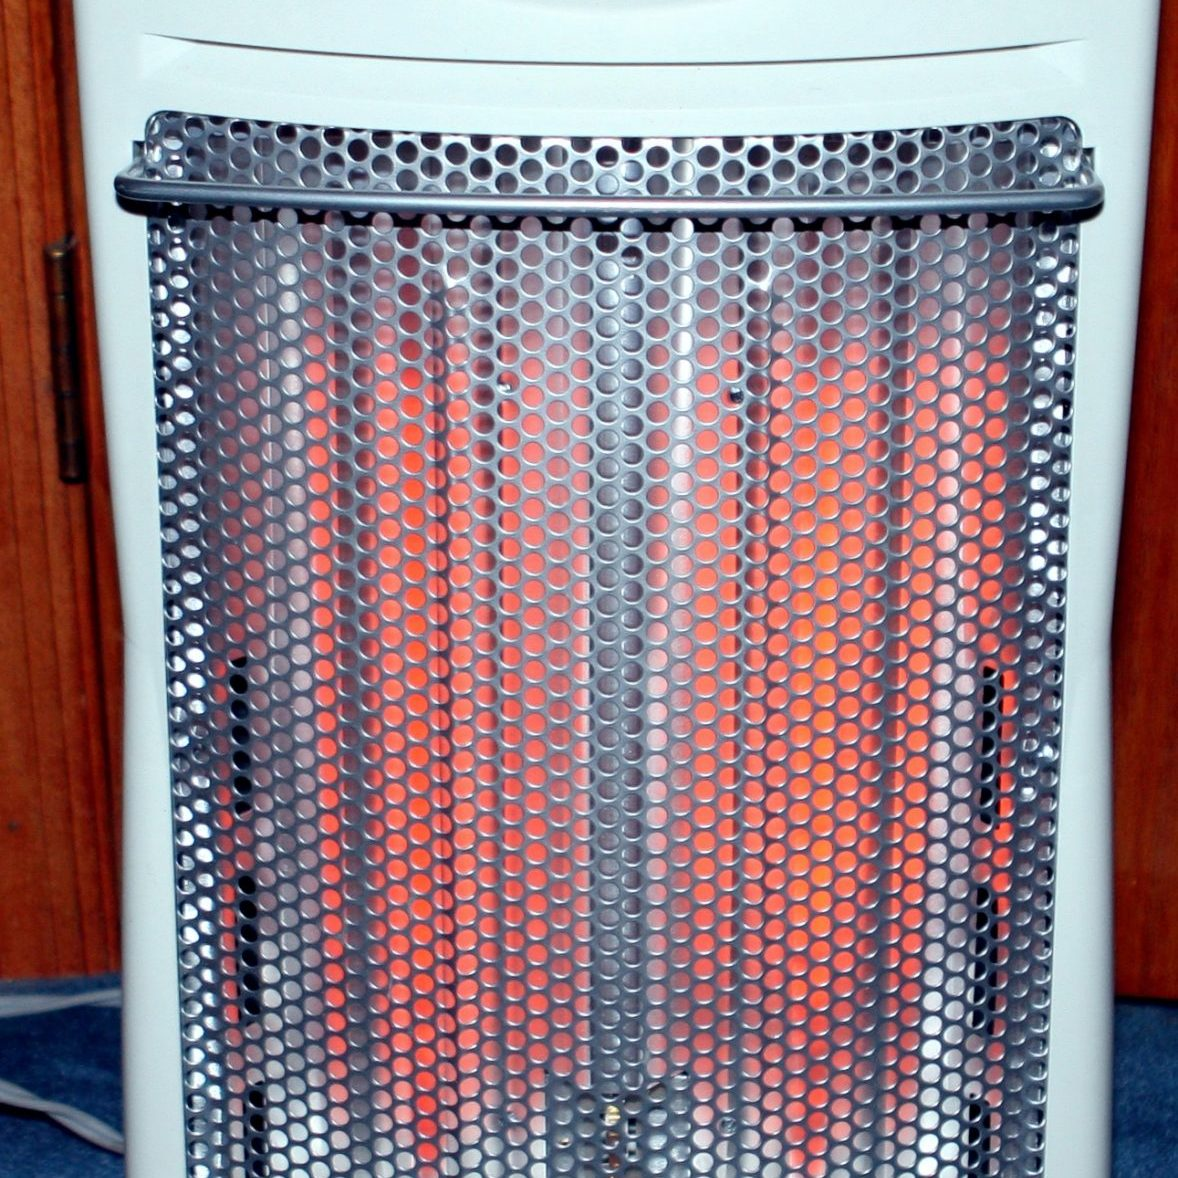 Space_heater